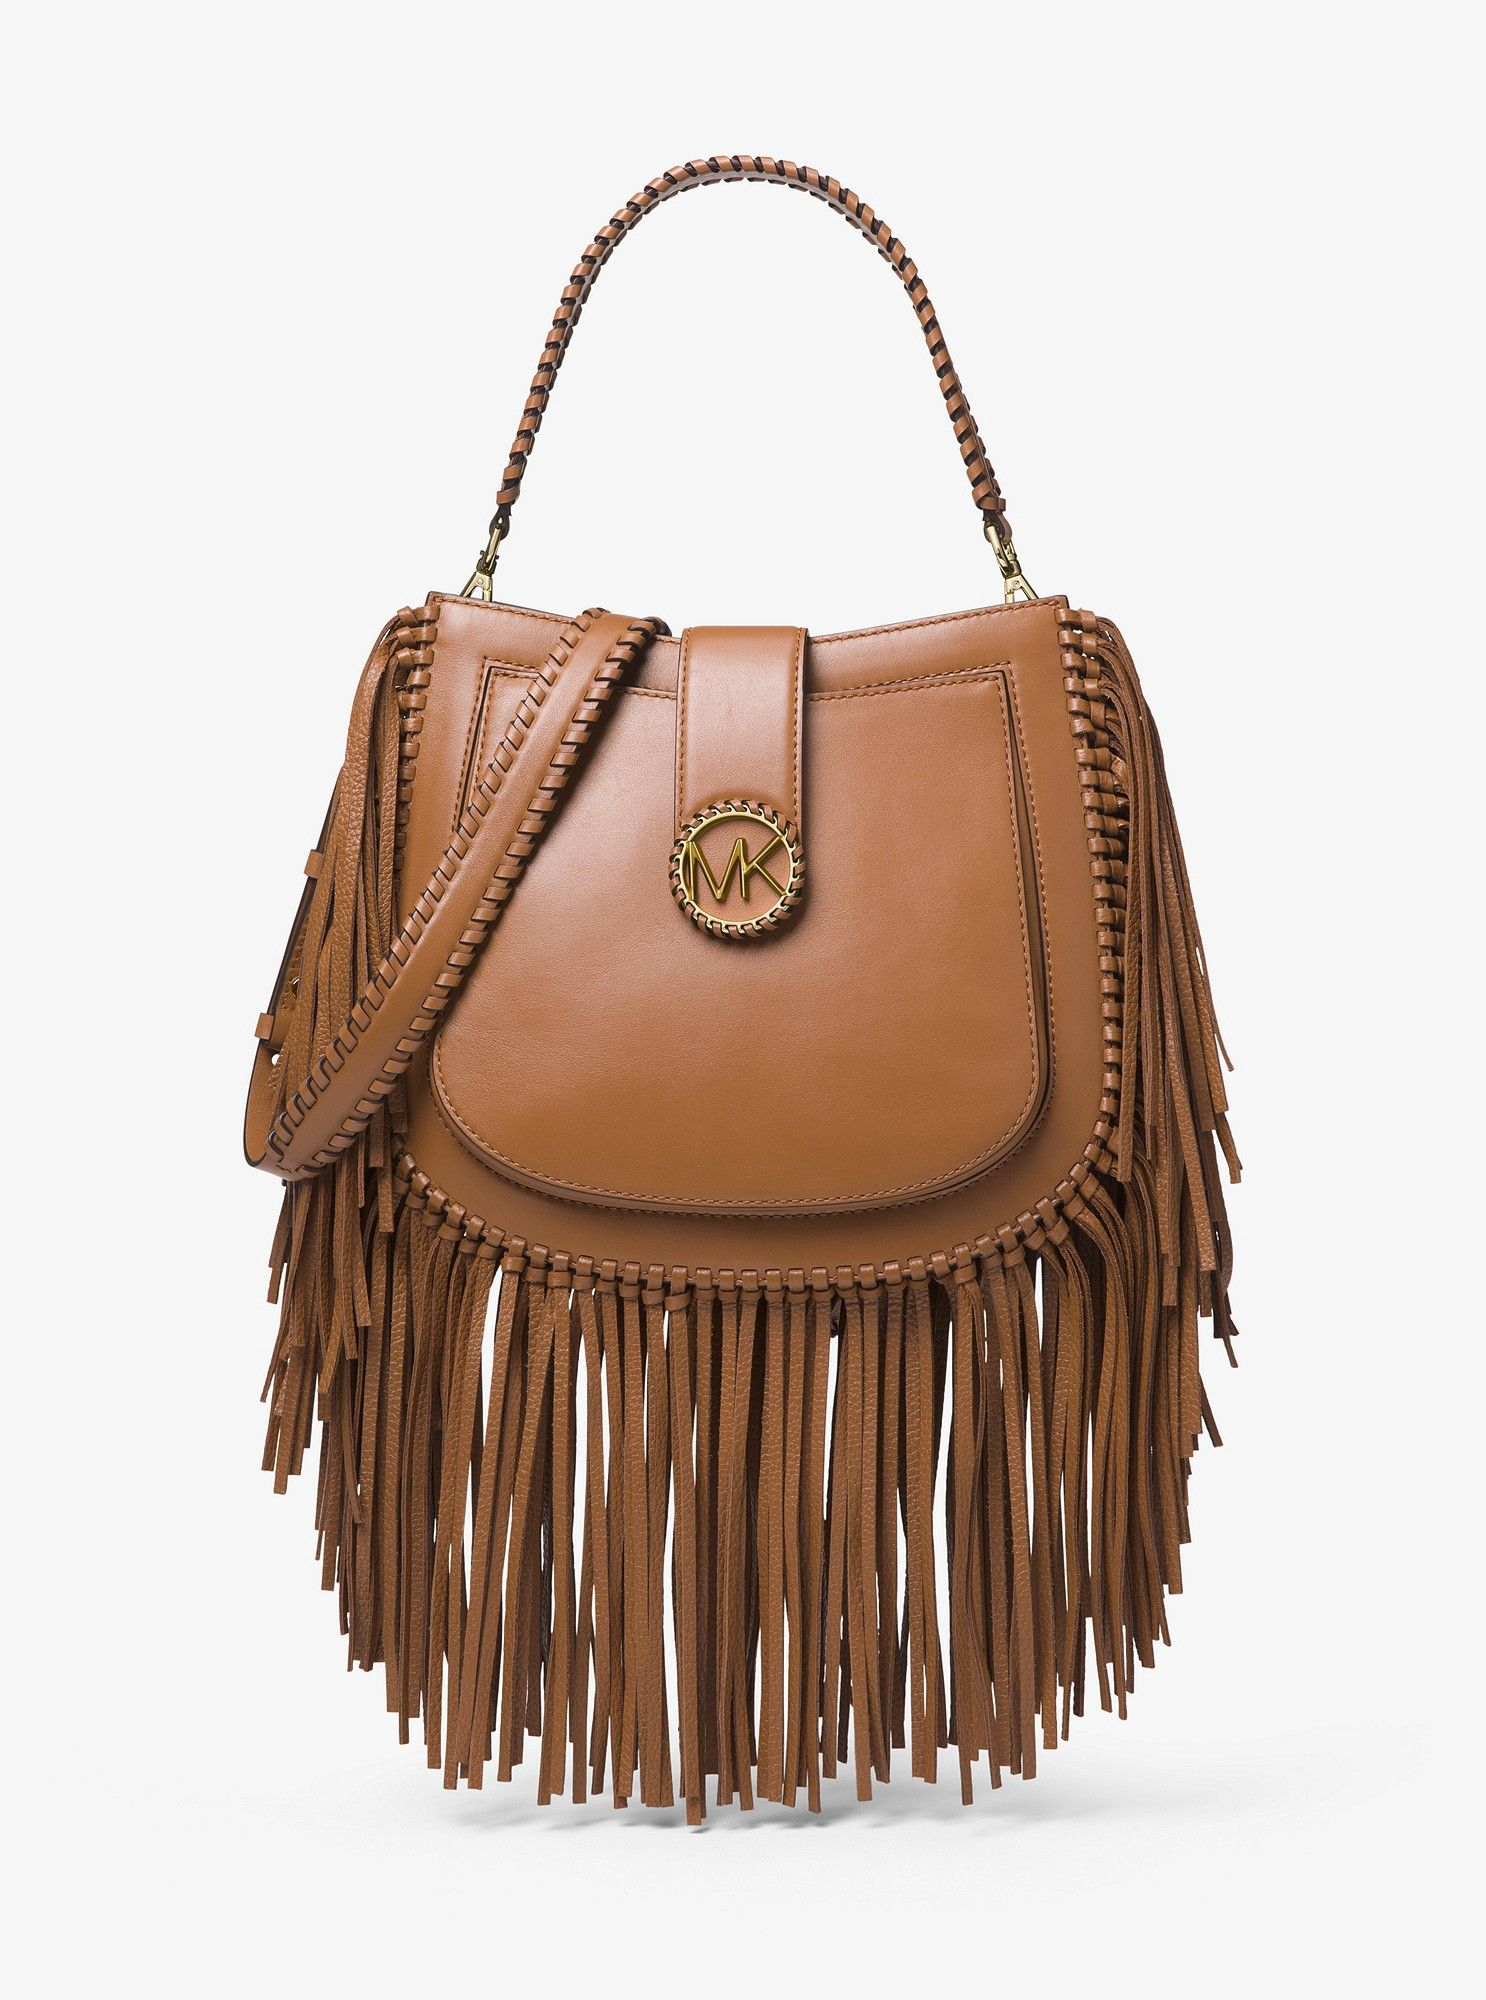 c2373403958a14 Michael Kors Lillie Medium Fringed Leather Shoulder Bag - Acorn ...